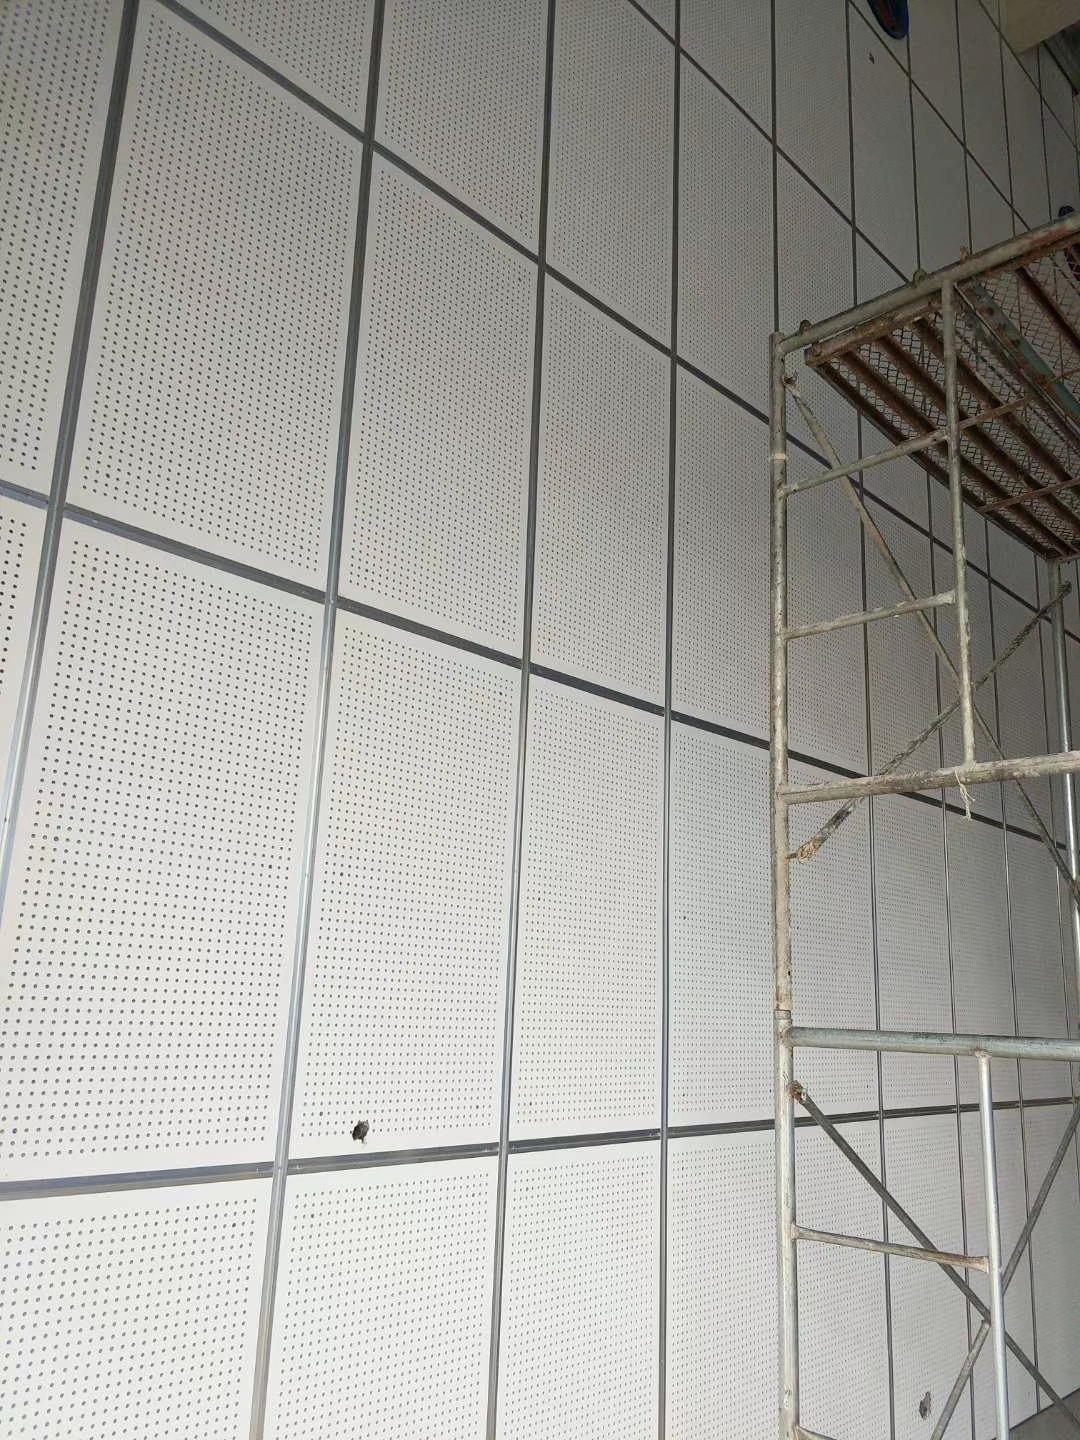 12mm perforated gypsum wall board